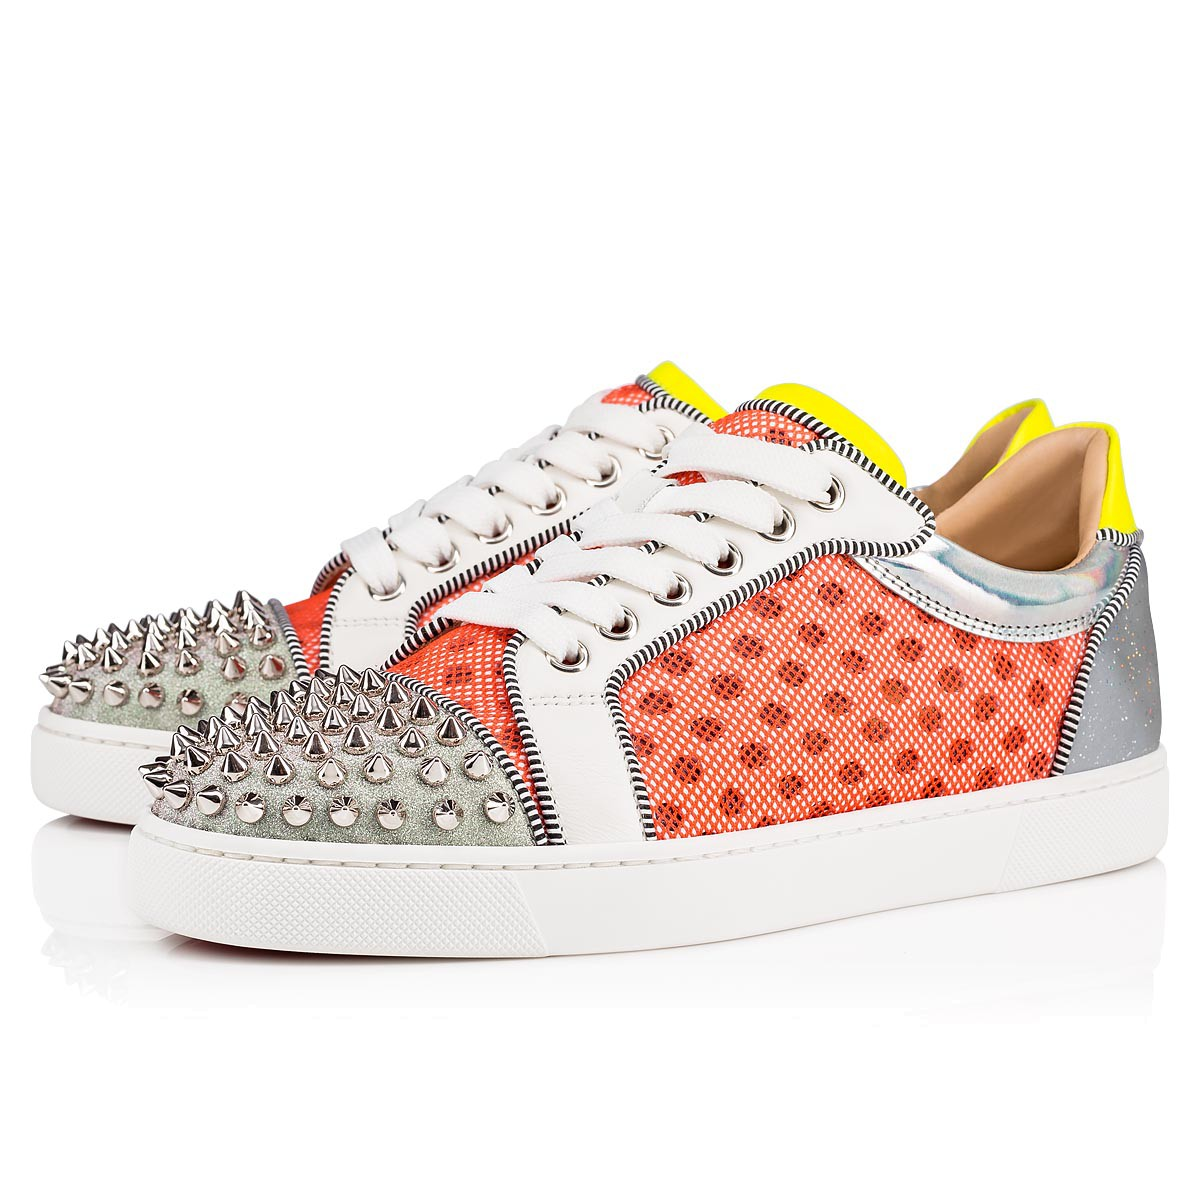 half off 55a5b a02ab Christian Louboutin Vieira Spikes Orlato Unisex Sneakers - Muliticolor in  SneakerStad